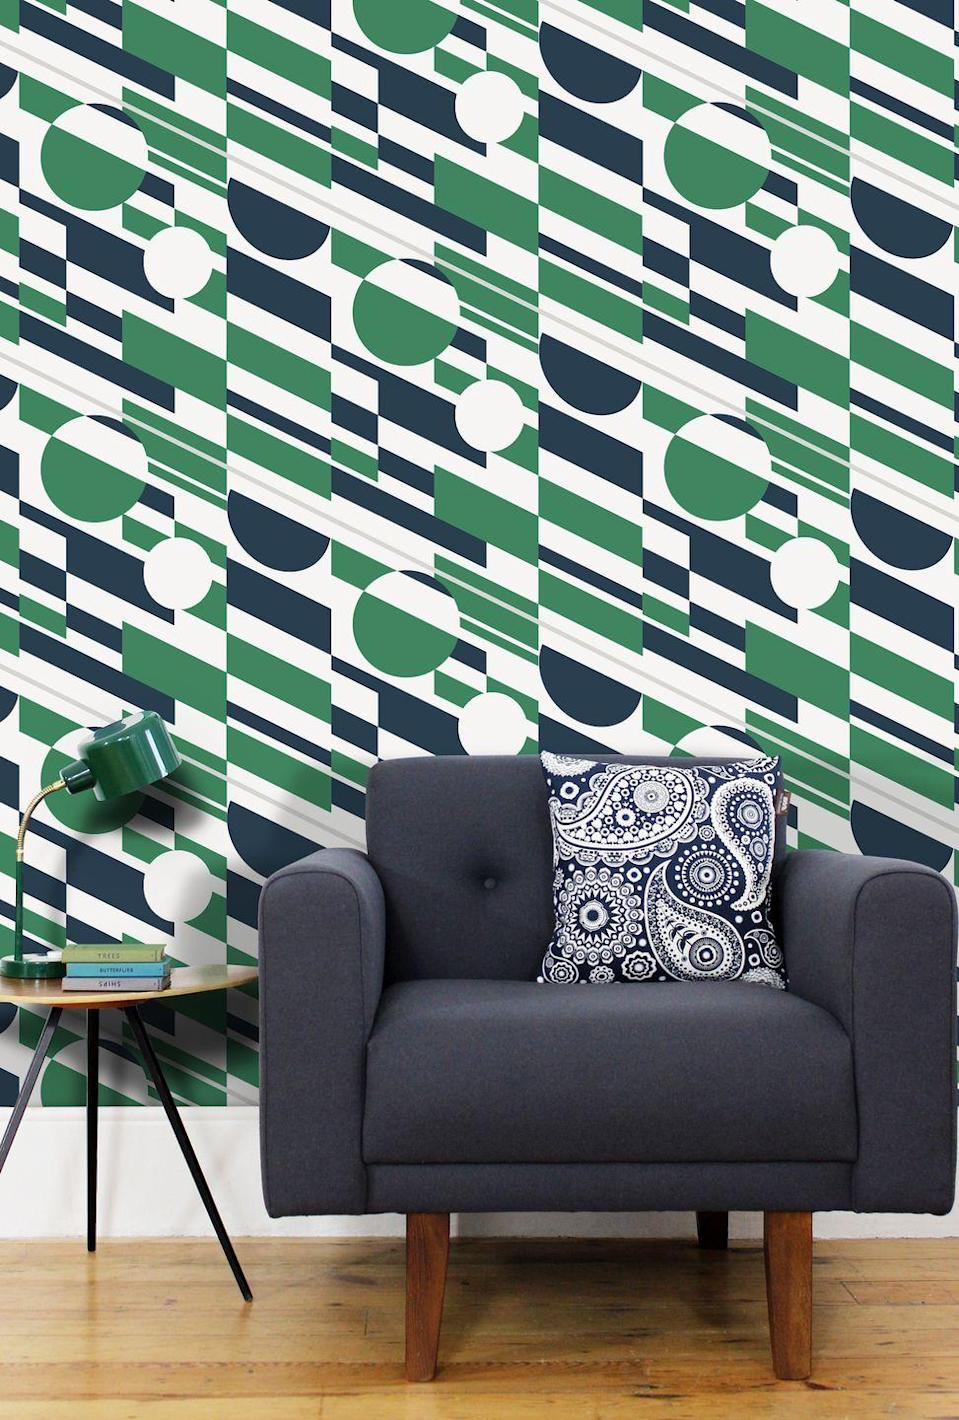 """<p>If mid-century is your thing, choose one of the stunning styles from Mini Moderns – this one is called <a href=""""https://www.minimoderns.com/product/p-l-u-t-o-wallpaper-coach-emerald-silver"""" rel=""""nofollow noopener"""" target=""""_blank"""" data-ylk=""""slk:P.L.U.T.O in Emerald and Silver"""" class=""""link rapid-noclick-resp"""">P.L.U.T.O in Emerald and Silver</a>. With bold stripes and circles, this wallpaper is named after the Pipeline Under The Ocean – a WW2 fuel line built under the English Channel from Britain to France. It's eco too, printed using water based ink on papers from sustained forests. </p>"""